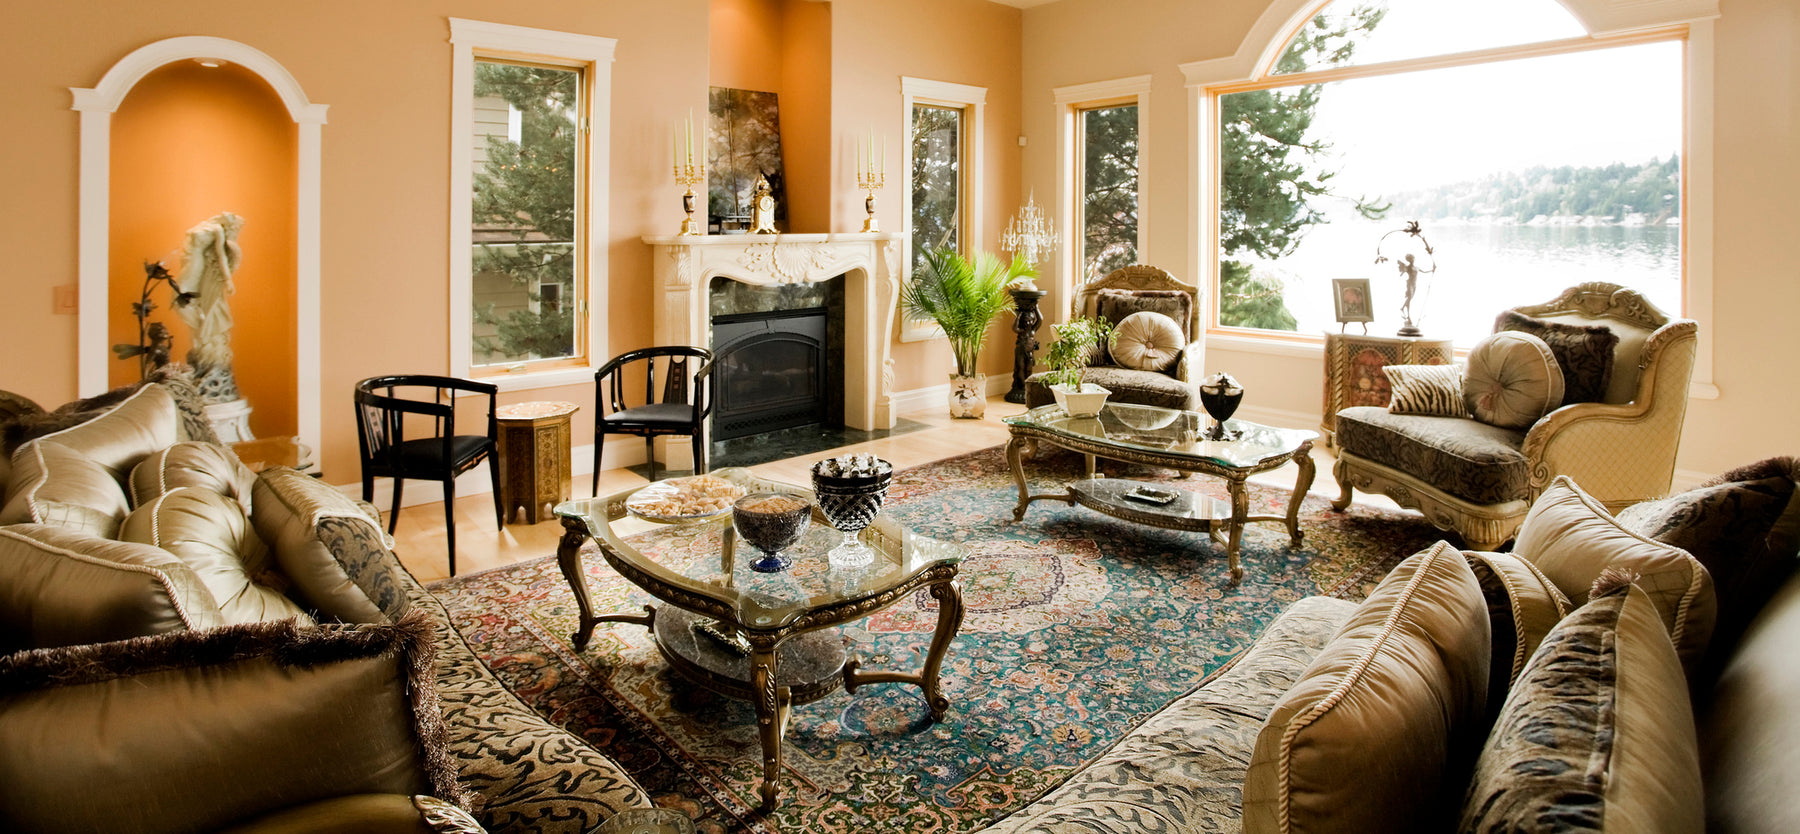 Tips on Choosing the Best Rug for Your Space